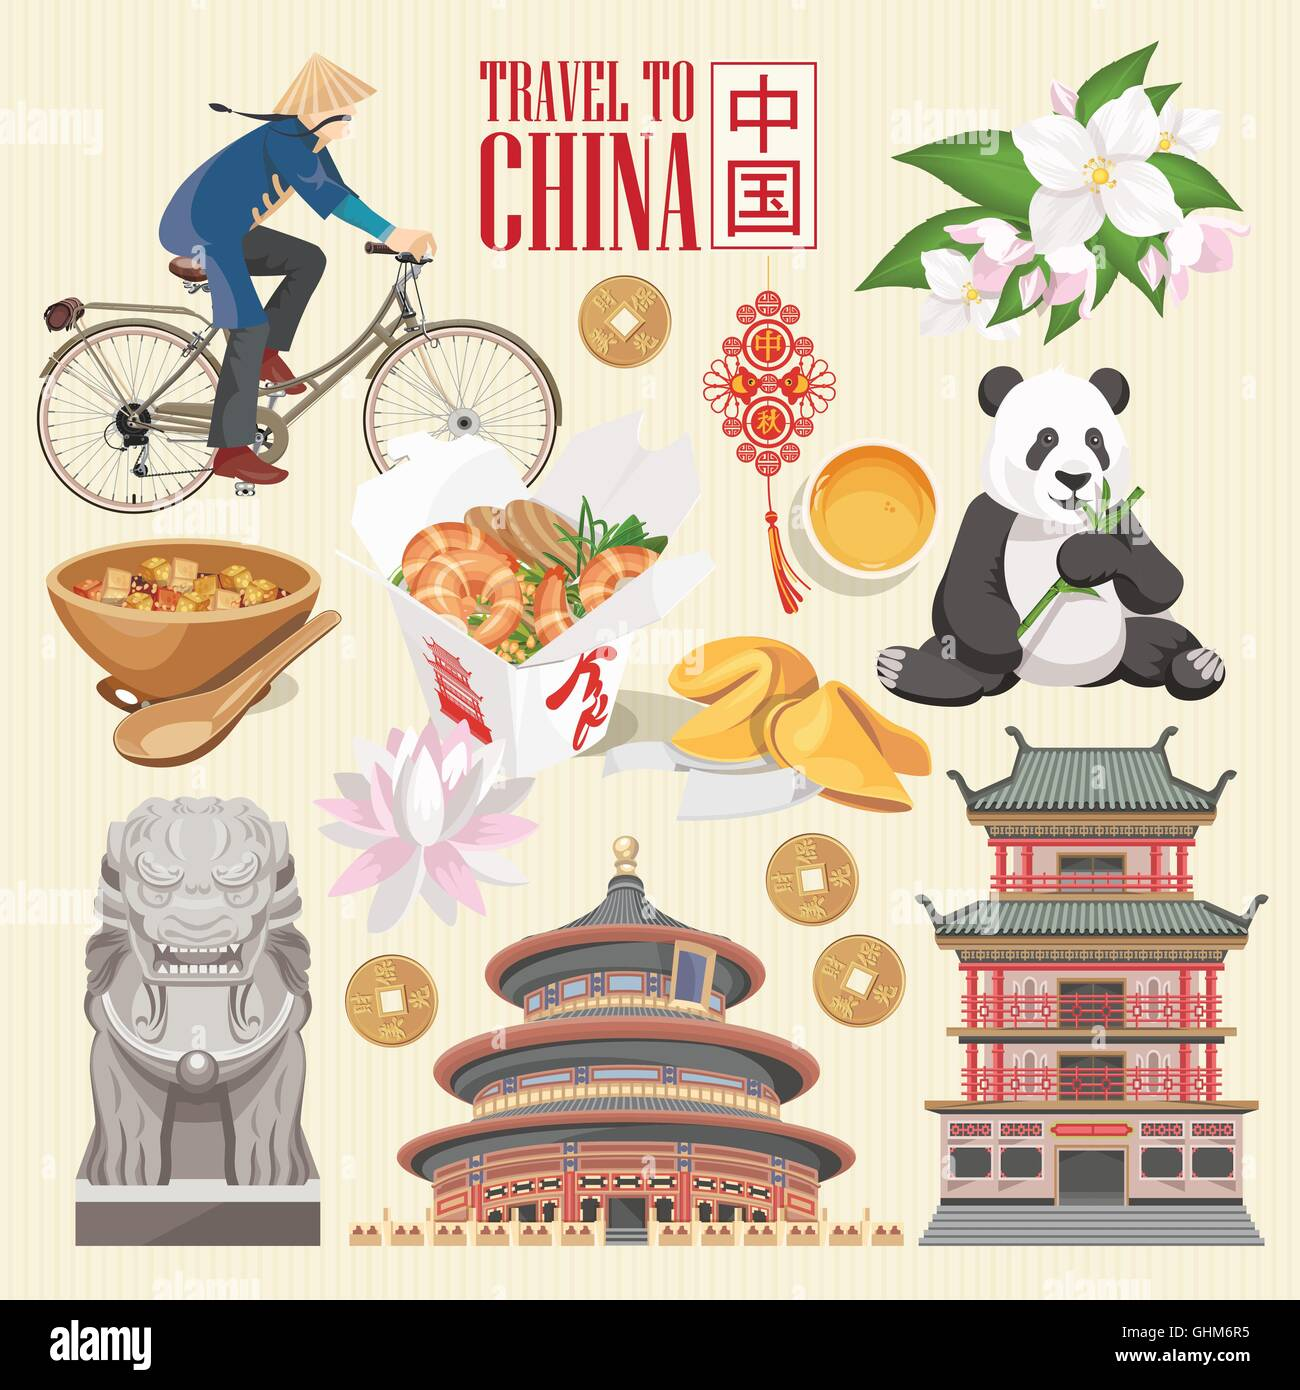 China travel vector illustration. Chinese set with architecture, food, costumes, traditional symbols in vintage - Stock Image